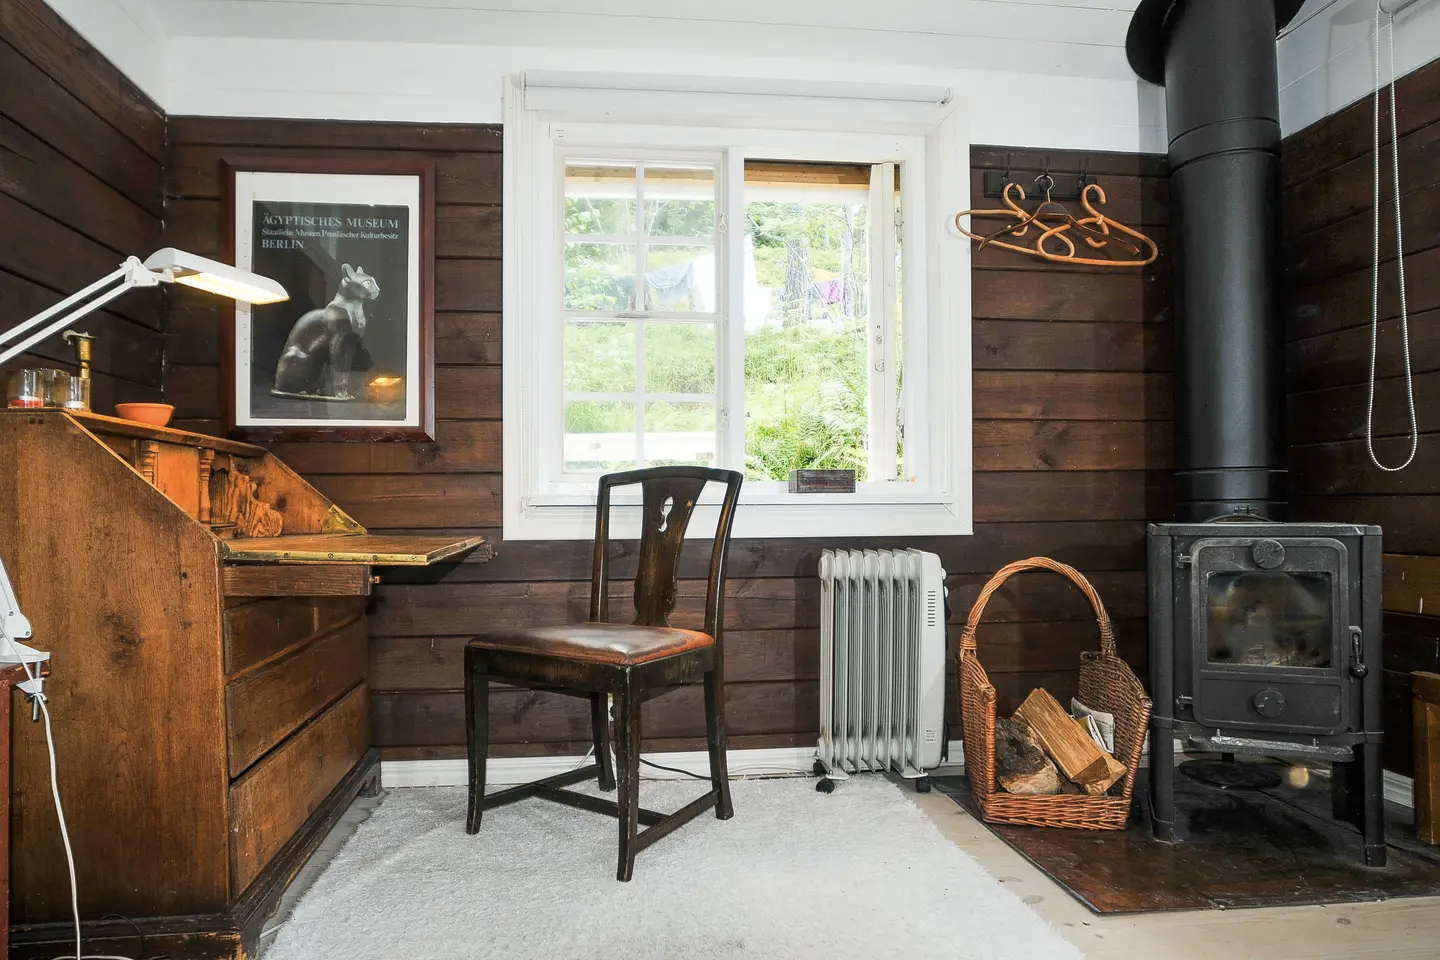 Stockholm writer's cabin for rent via Airbnb